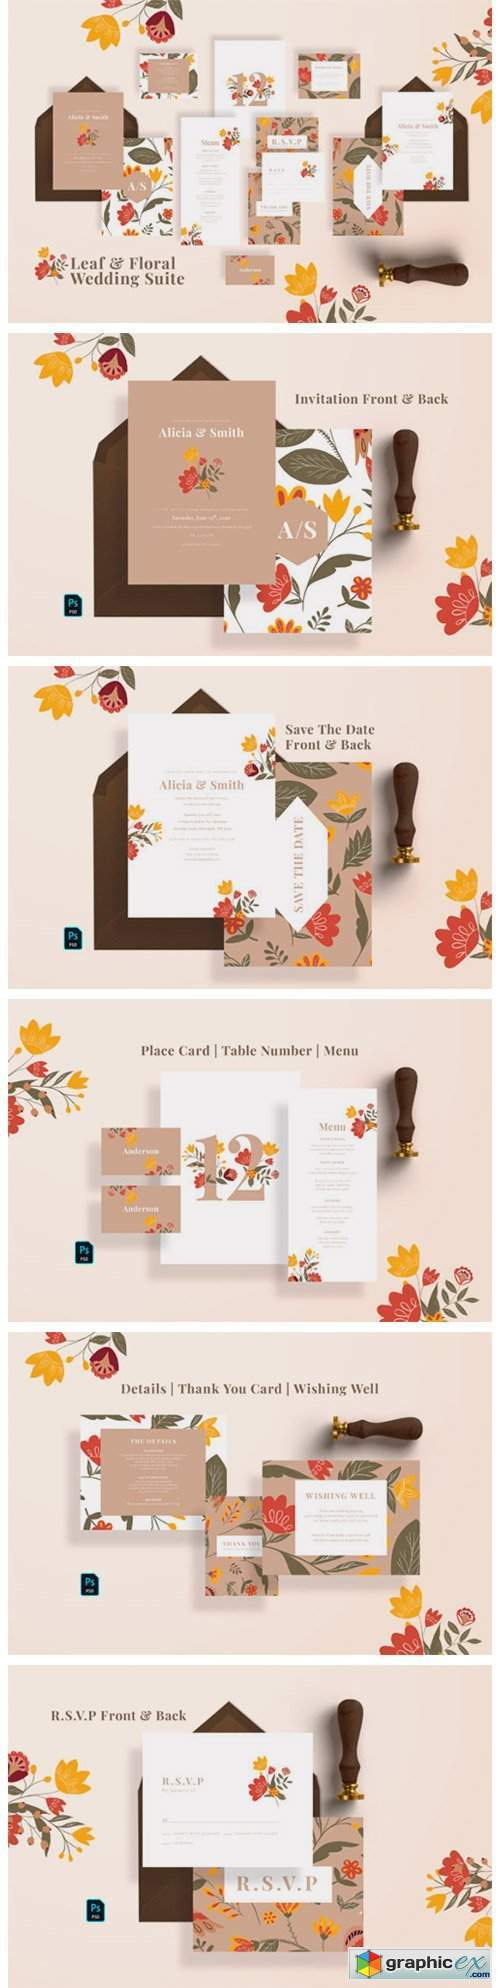 Leaf & Floral Wedding Suite